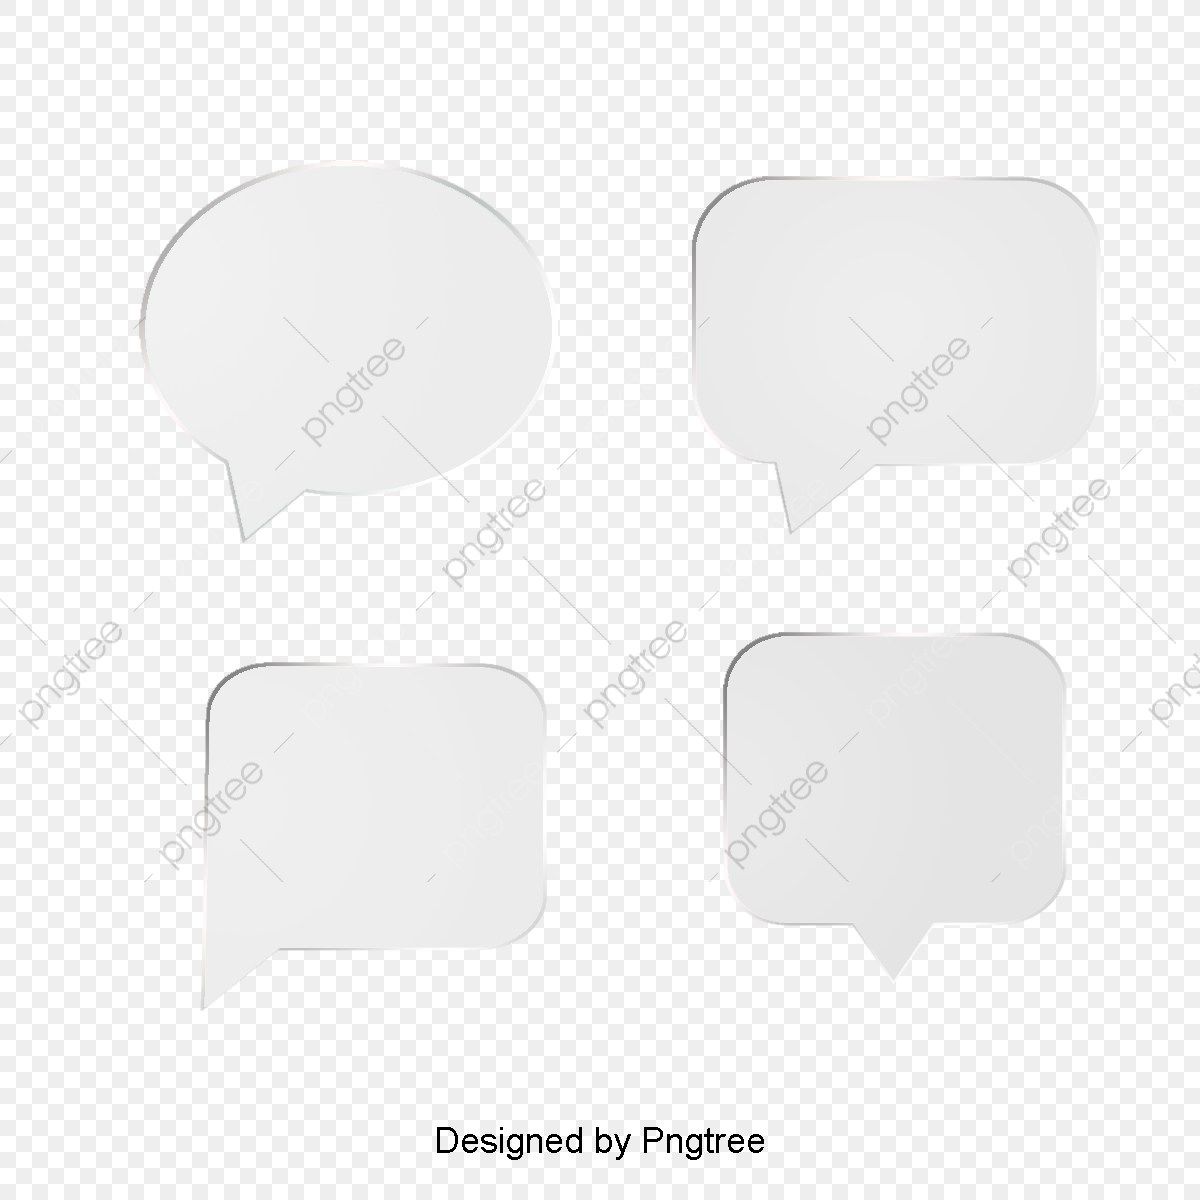 Four Simple White Frame Vector, Frame, Frame Vector, Border.